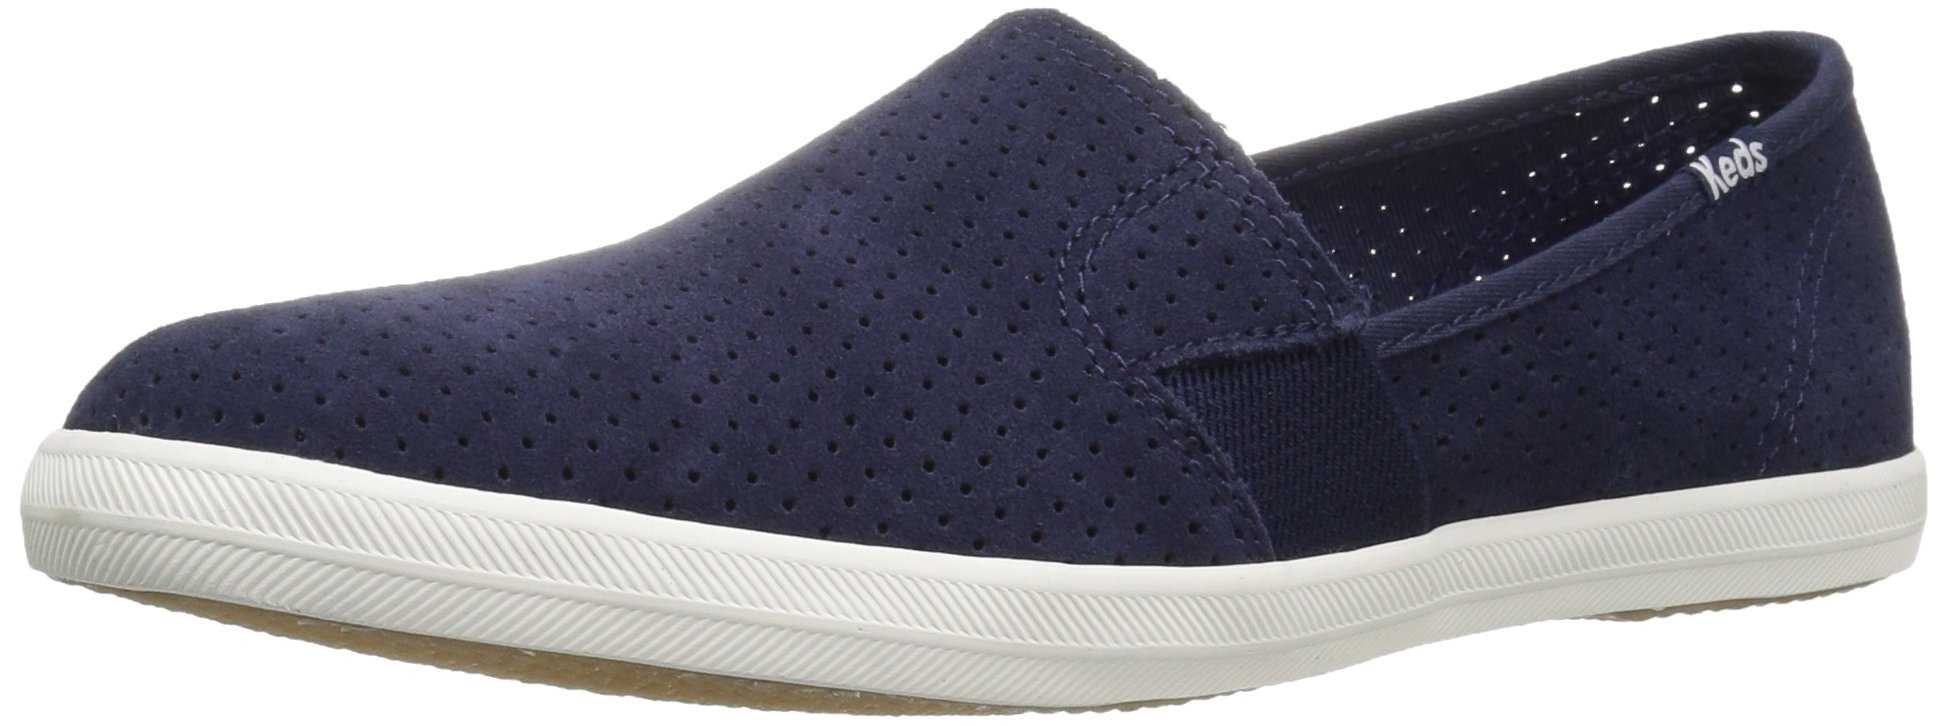 Keds Women's Chillax a-Line Perf Suede Fashion Sneaker, Peacoat Navy, 7 M US